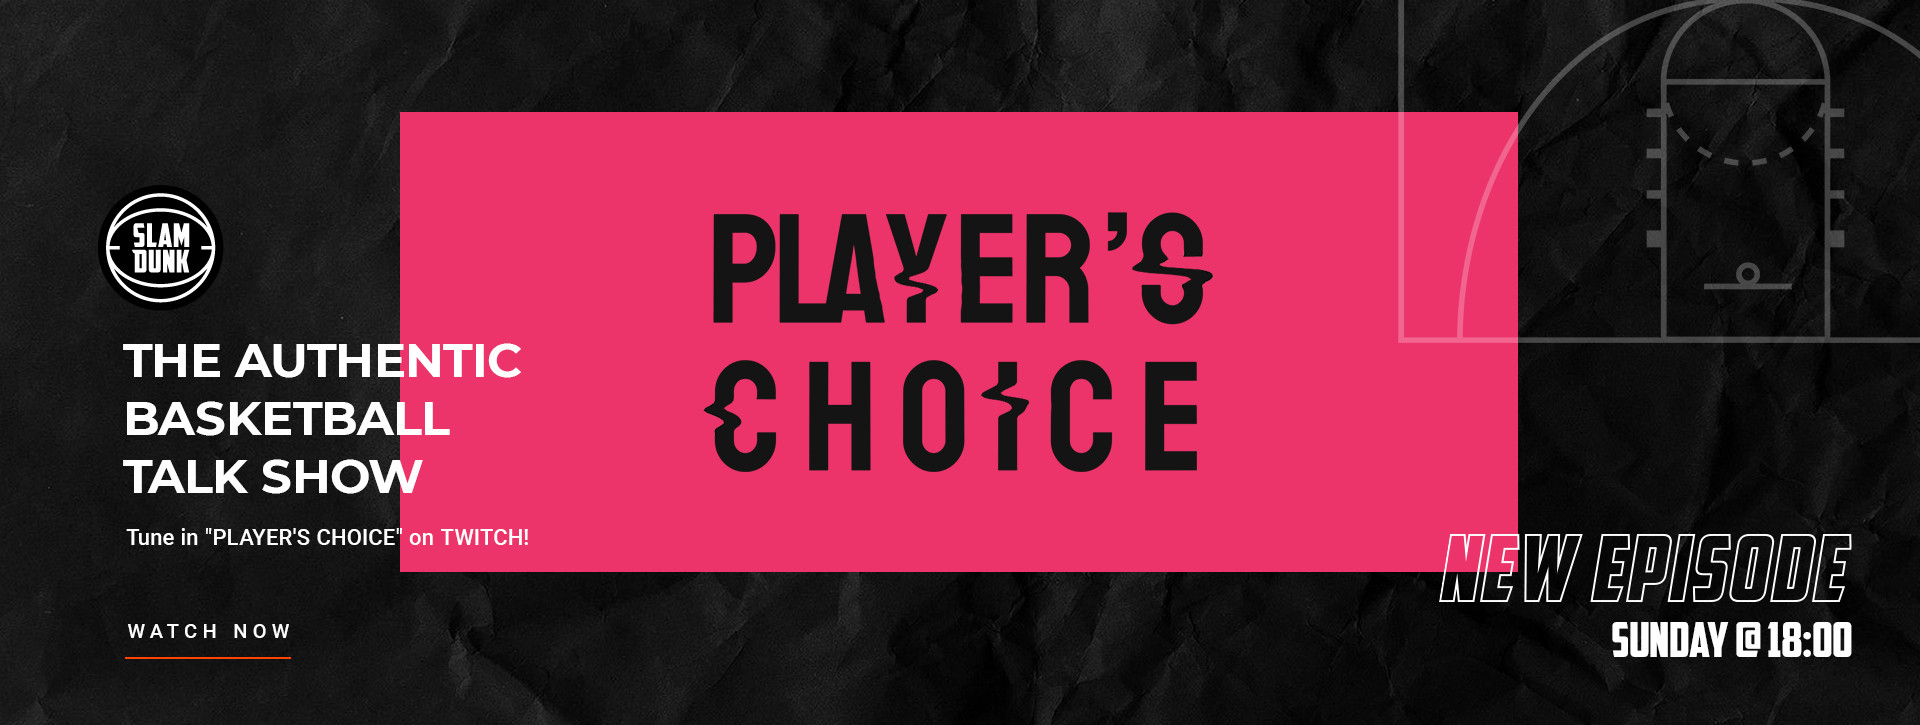 Players Choice on Twitch